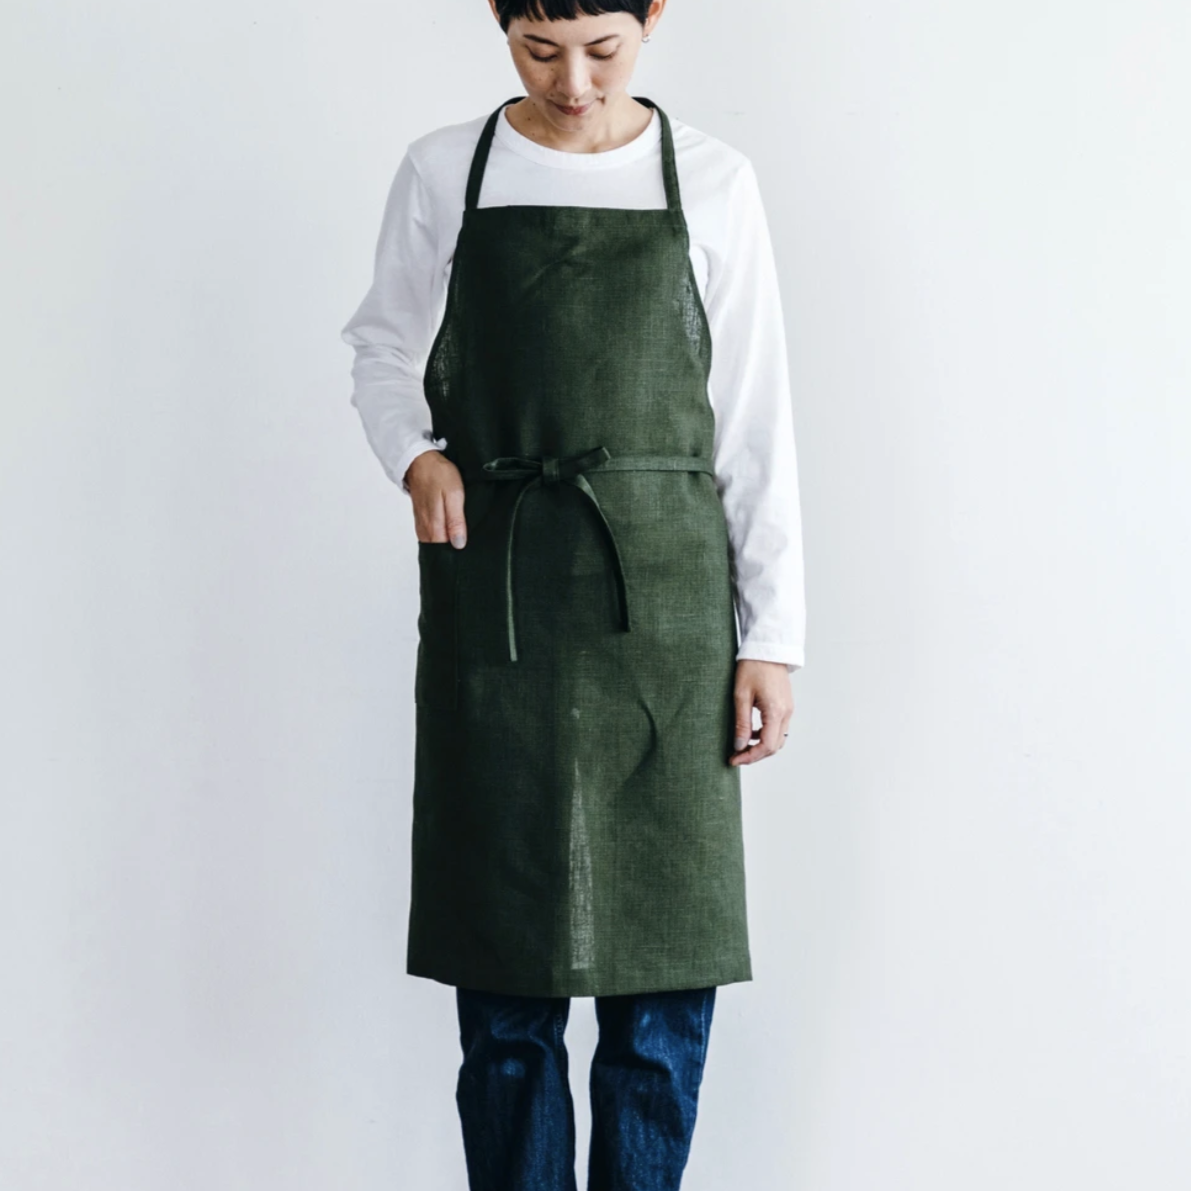 Fog Linen Work Daily Apron Laurel